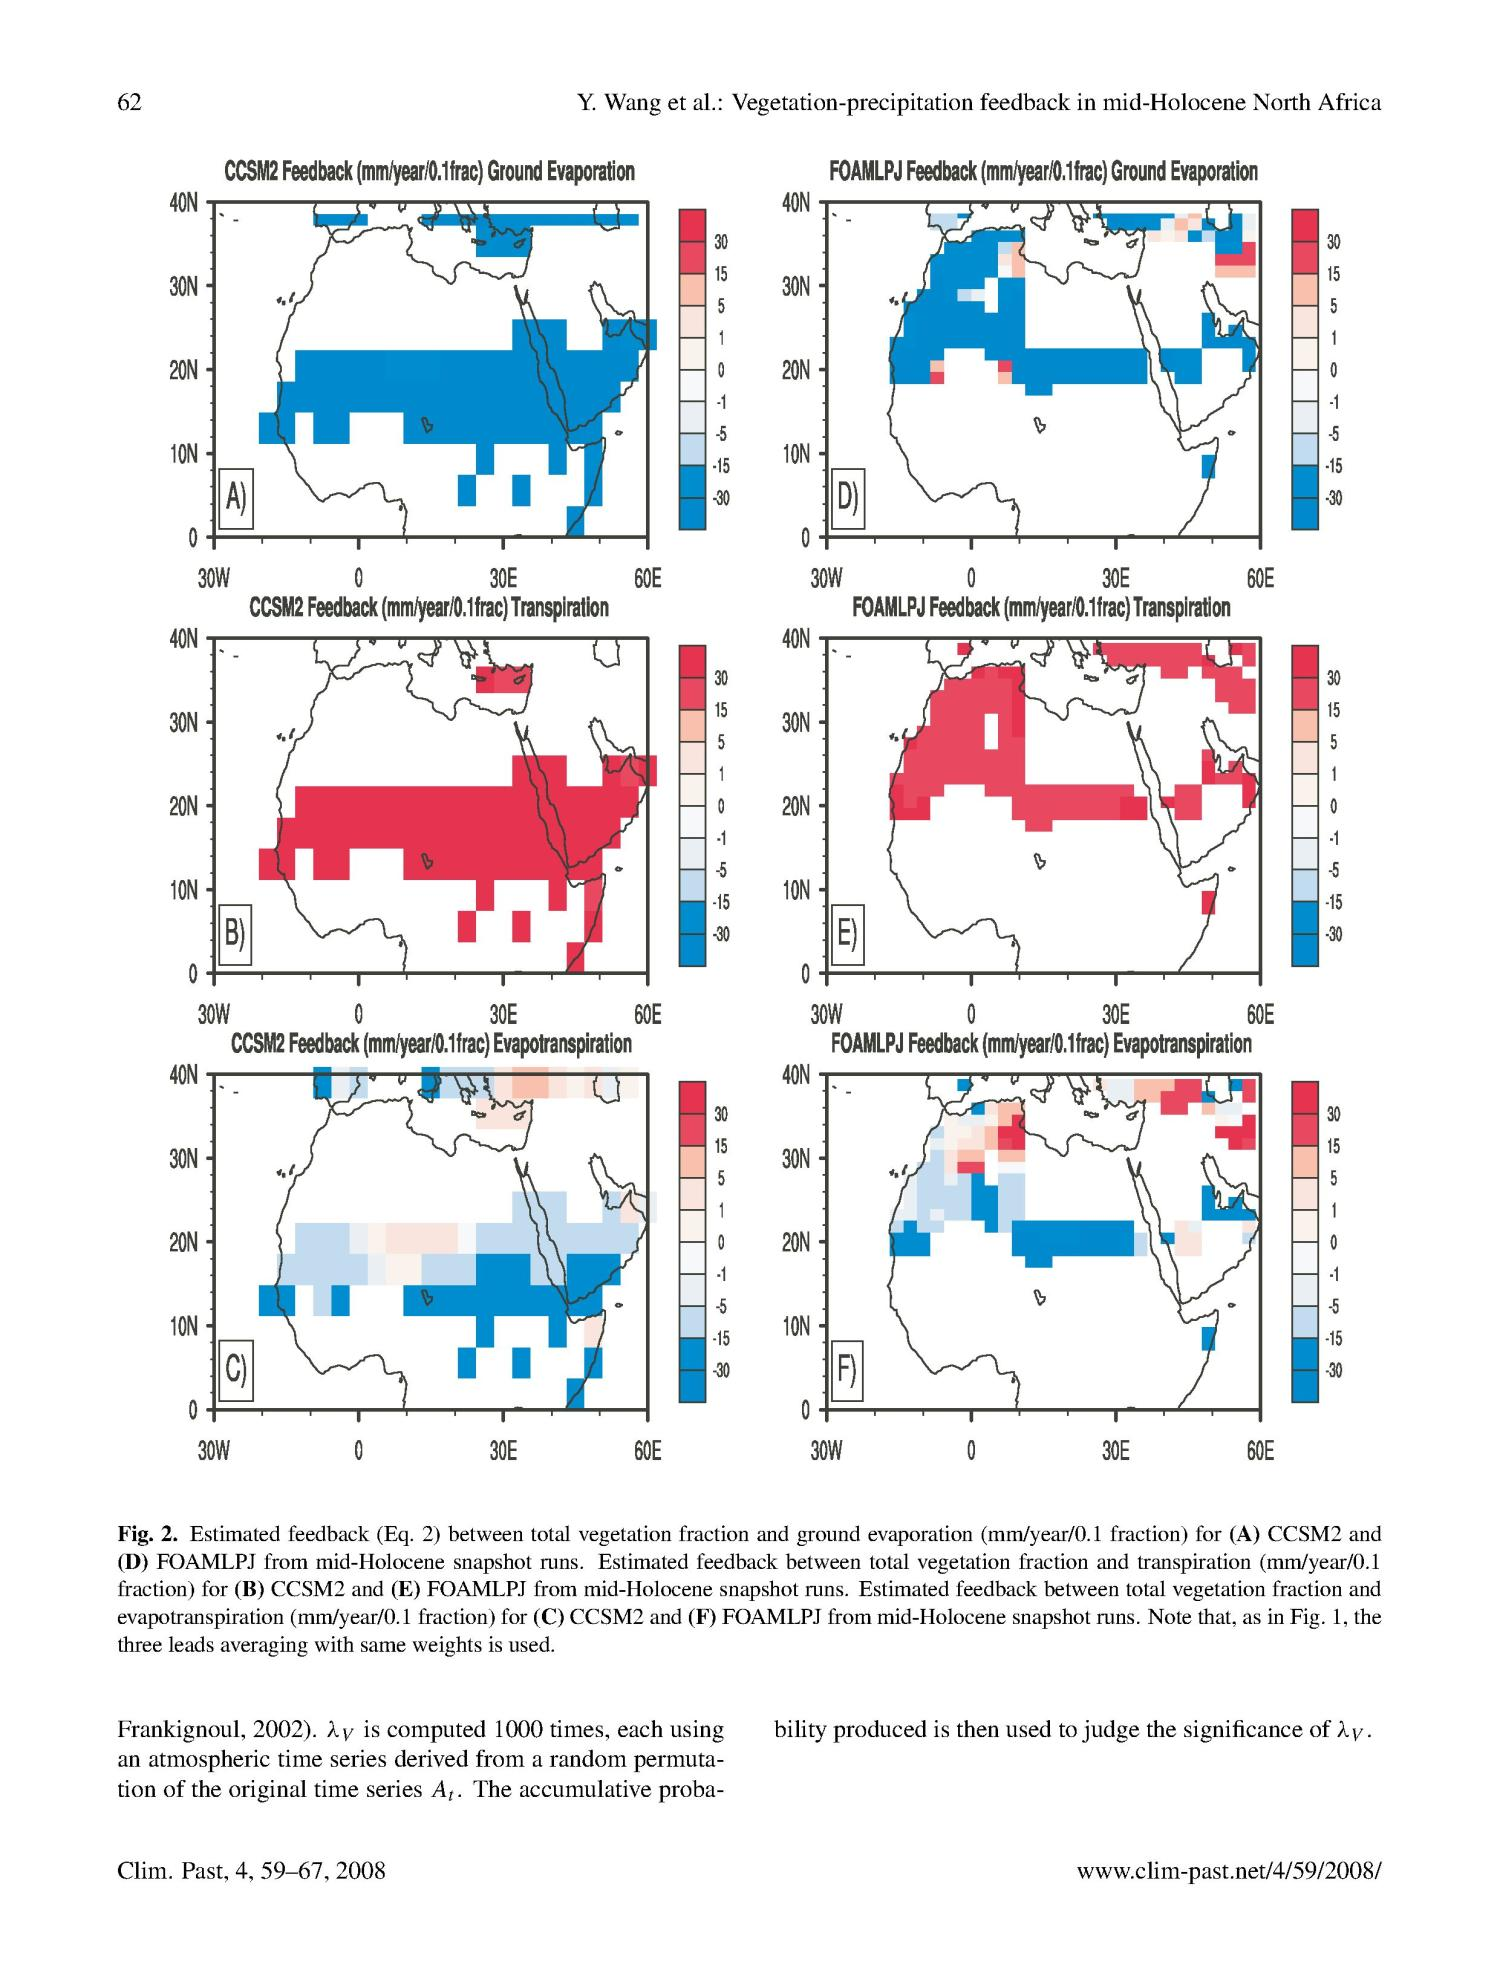 Detecting vegetation-precipitation feedbacks in mid-Holocene North Africa from two climate models                                                                                                      [Sequence #]: 4 of 9